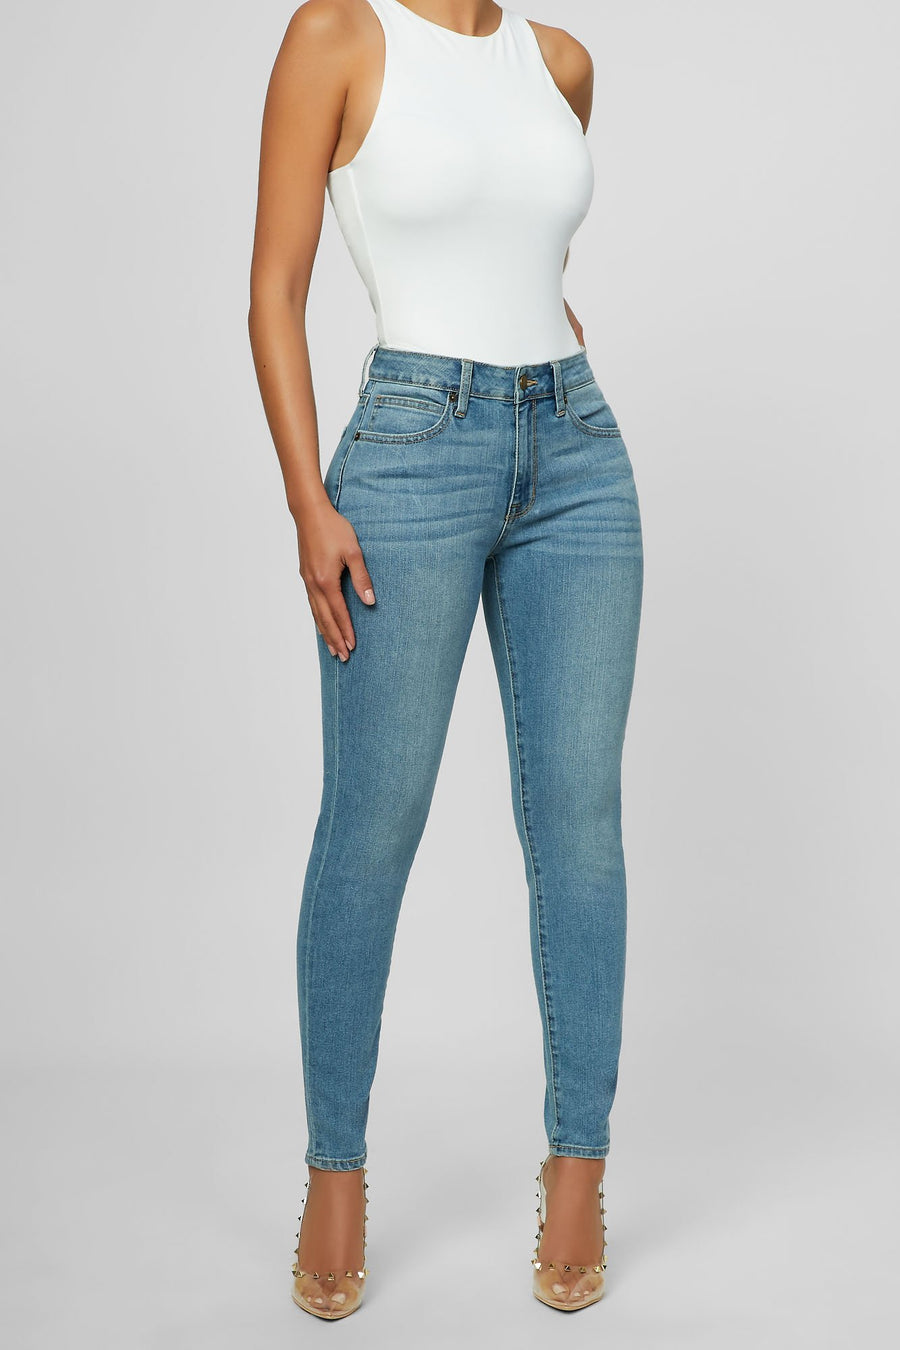 Perfectly Classic Jeans PRE-ORDER 4/3